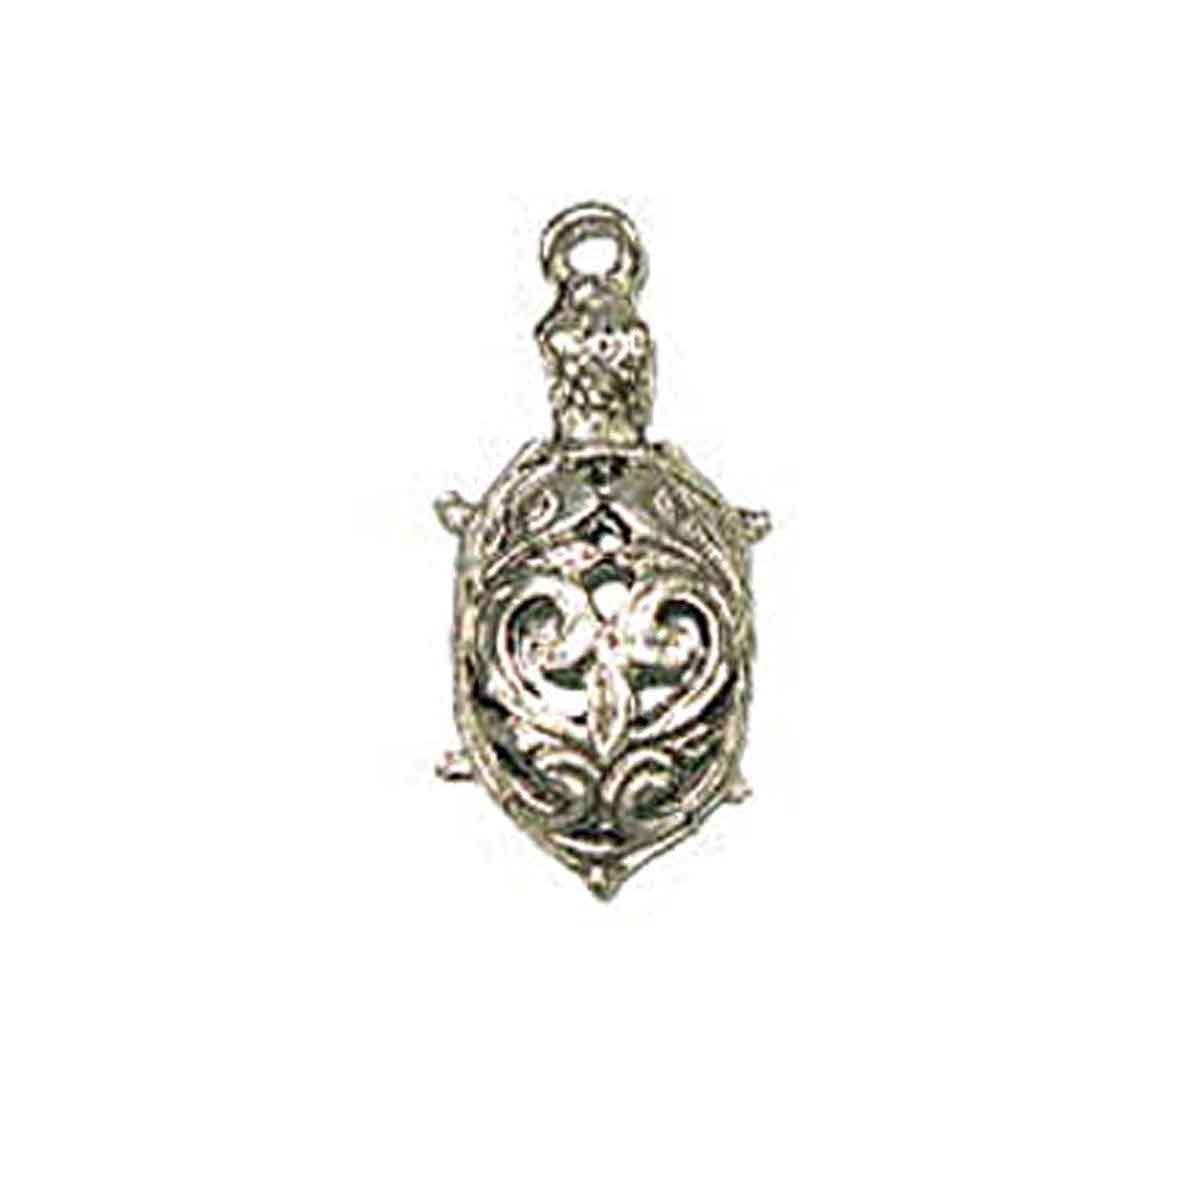 Pendant - Filigree Turtle 25mm Antique Silver